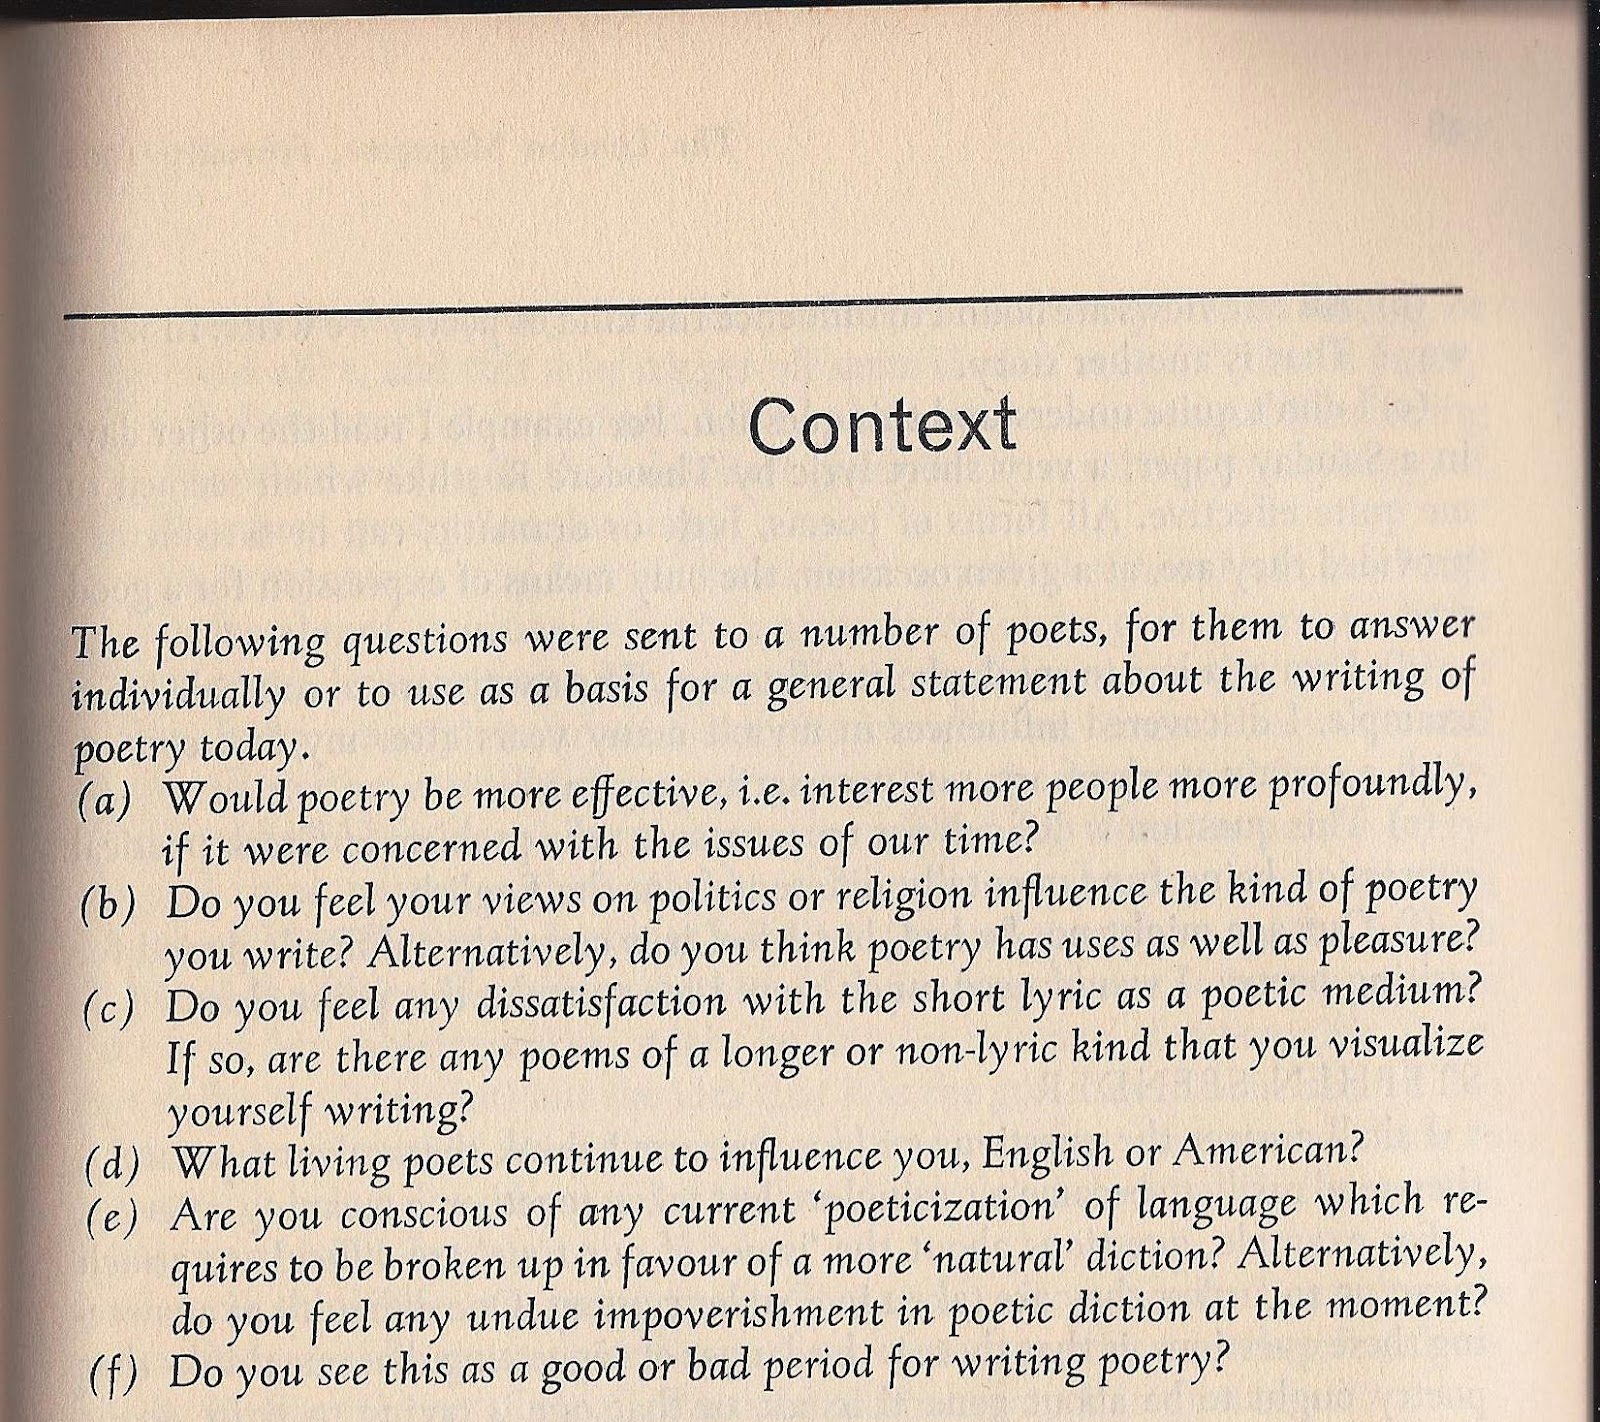 sylvia plath info putting sylvia plath s context in context the twenty six responses were submitted by in order of appearance in the issue robert graves george seferis stephen spender c day lewis